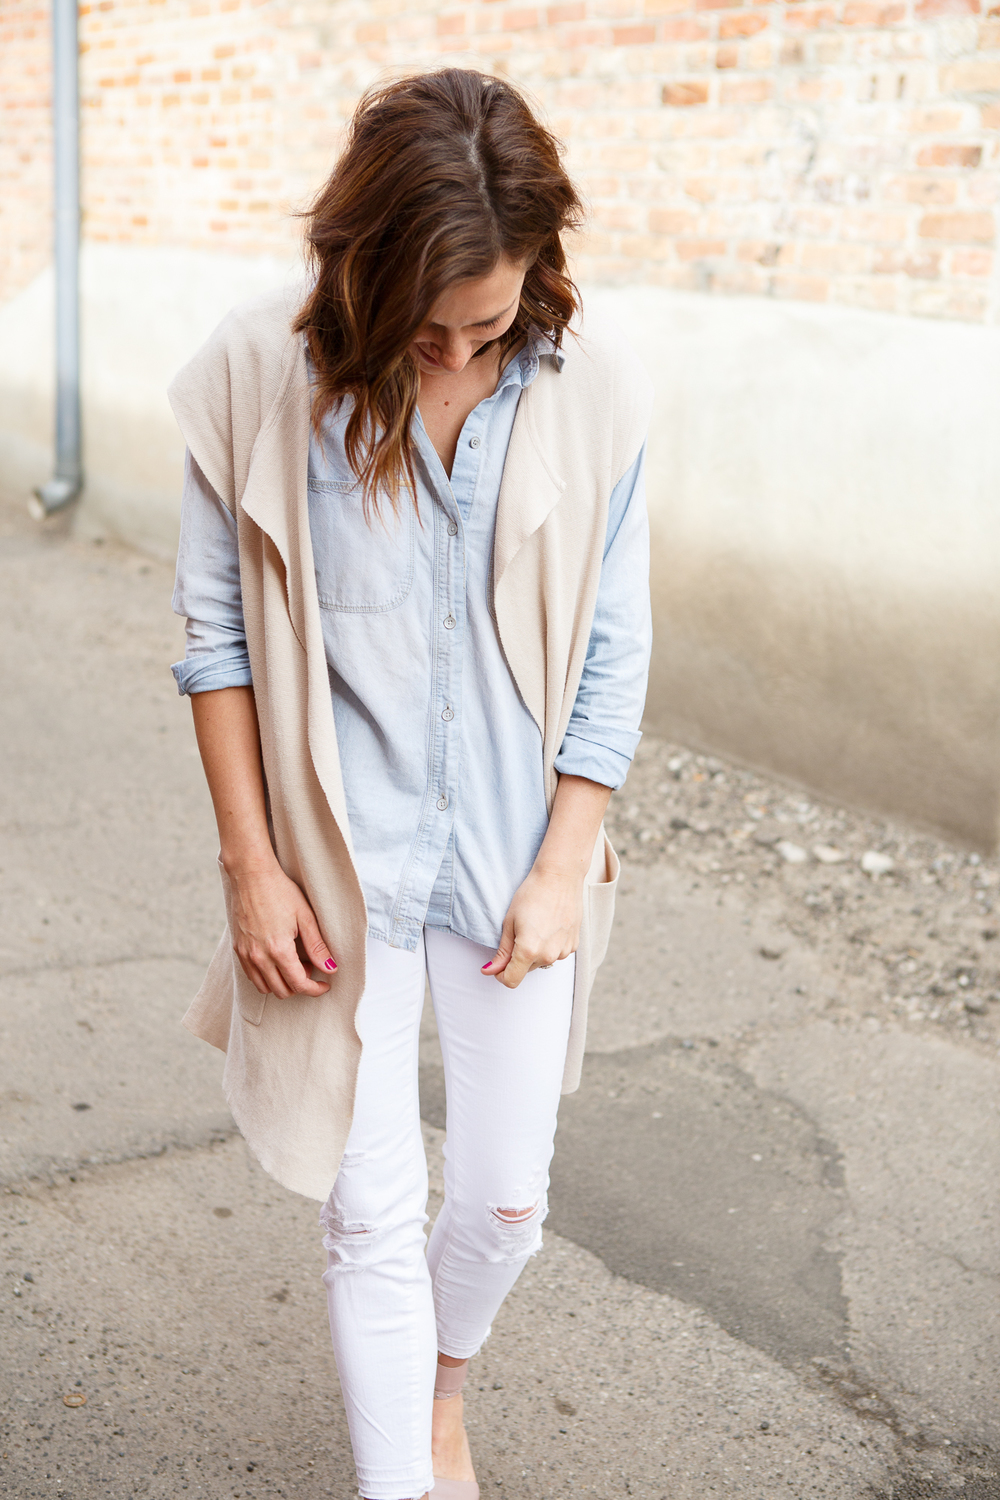 114 West, Brooke Peterson Photography, Harlow , Style Blogger, Fashion Blogger, Montana Style